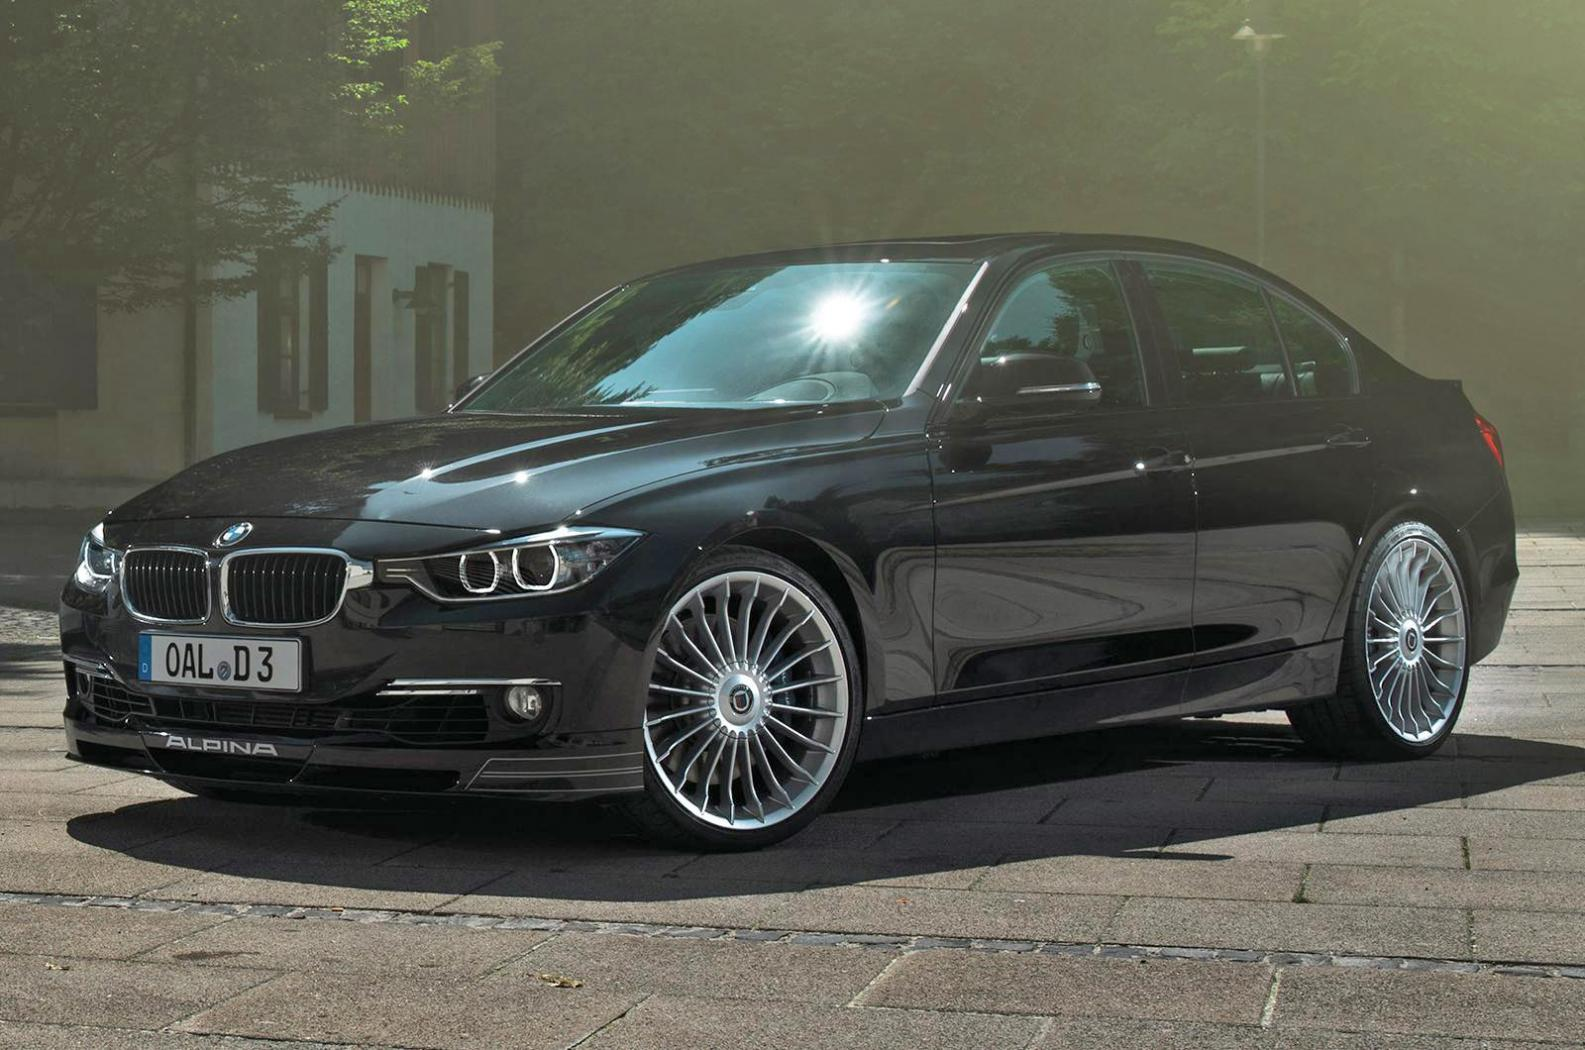 Alpina-D3-BiTurbo.jpeg